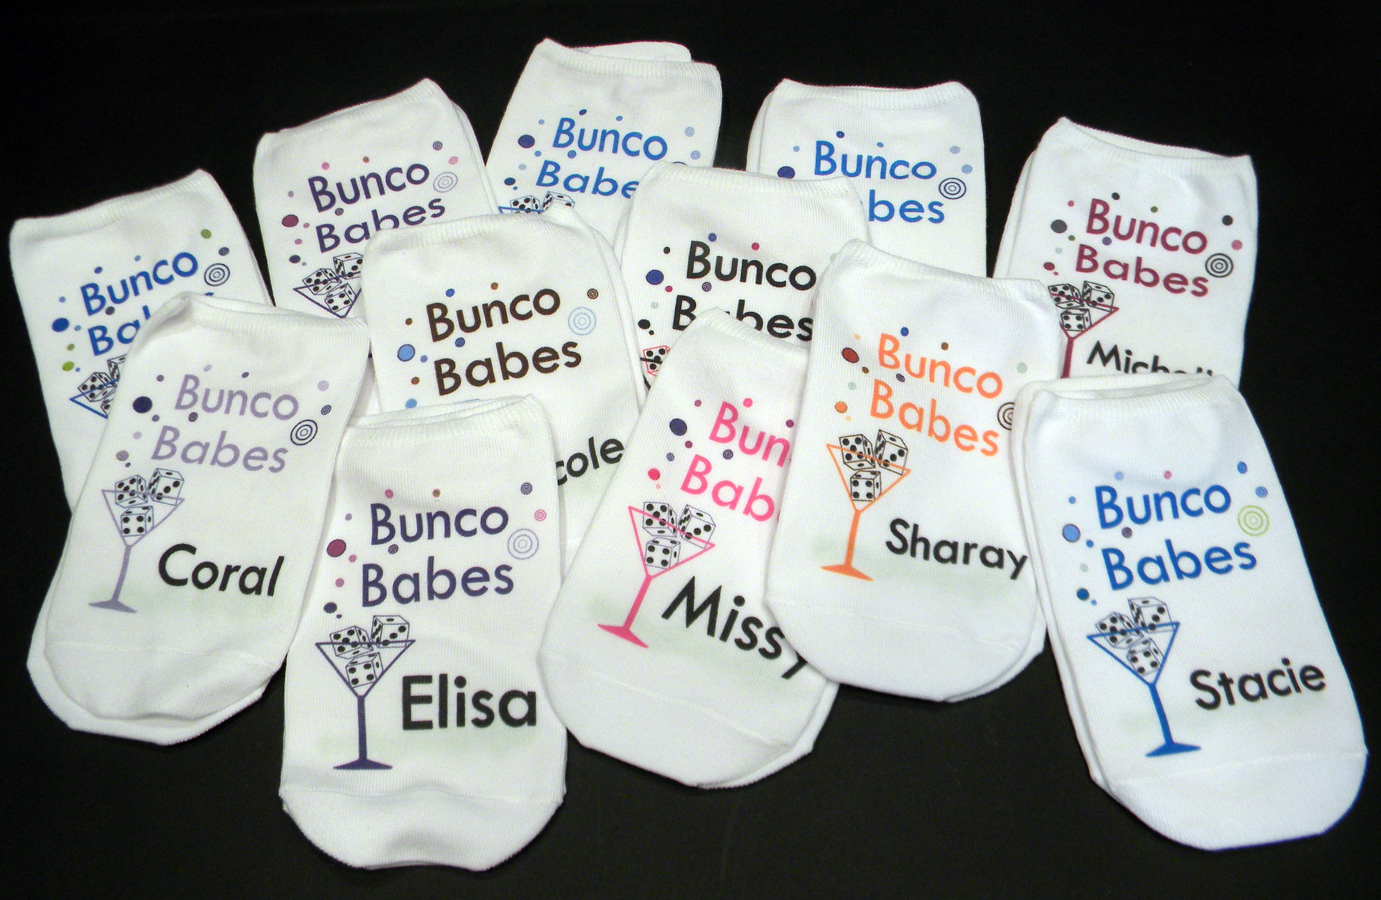 Bunco Christmas Party Ideas Part - 42: 5 Great Custom Sock Gift Ideas!